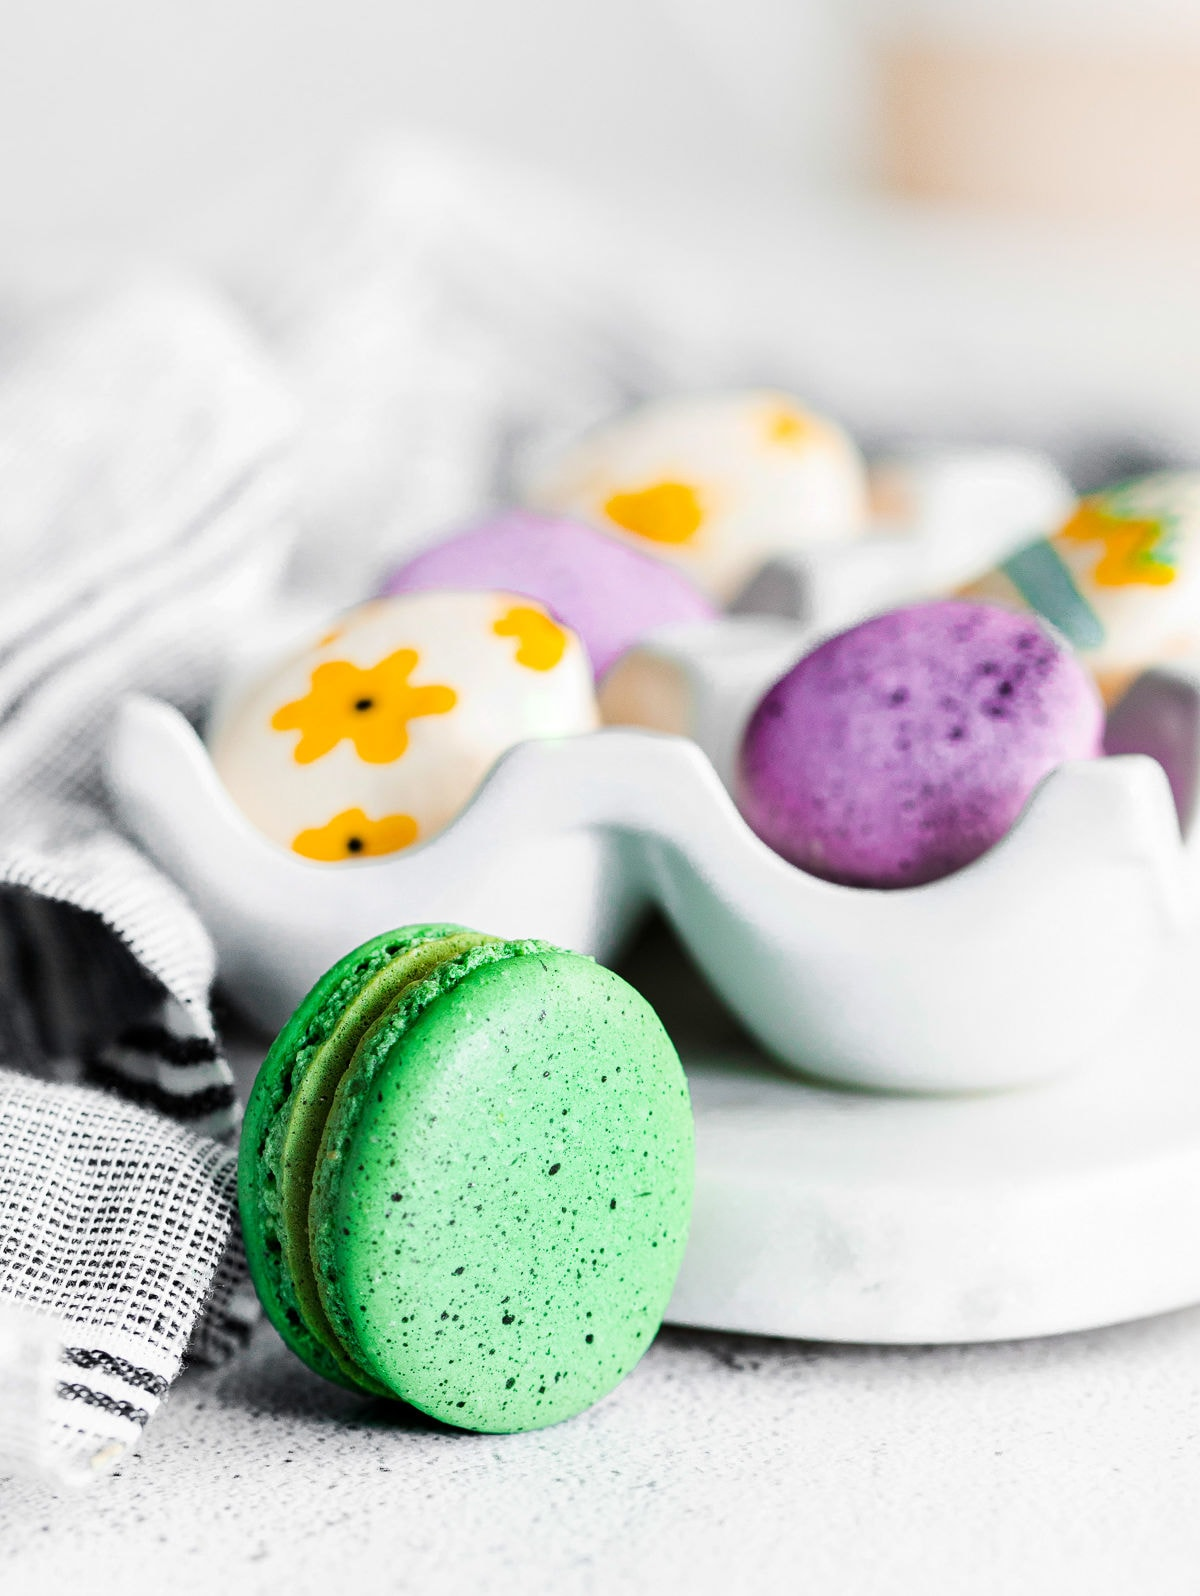 green speckled macaron sitting in front of egg tray.